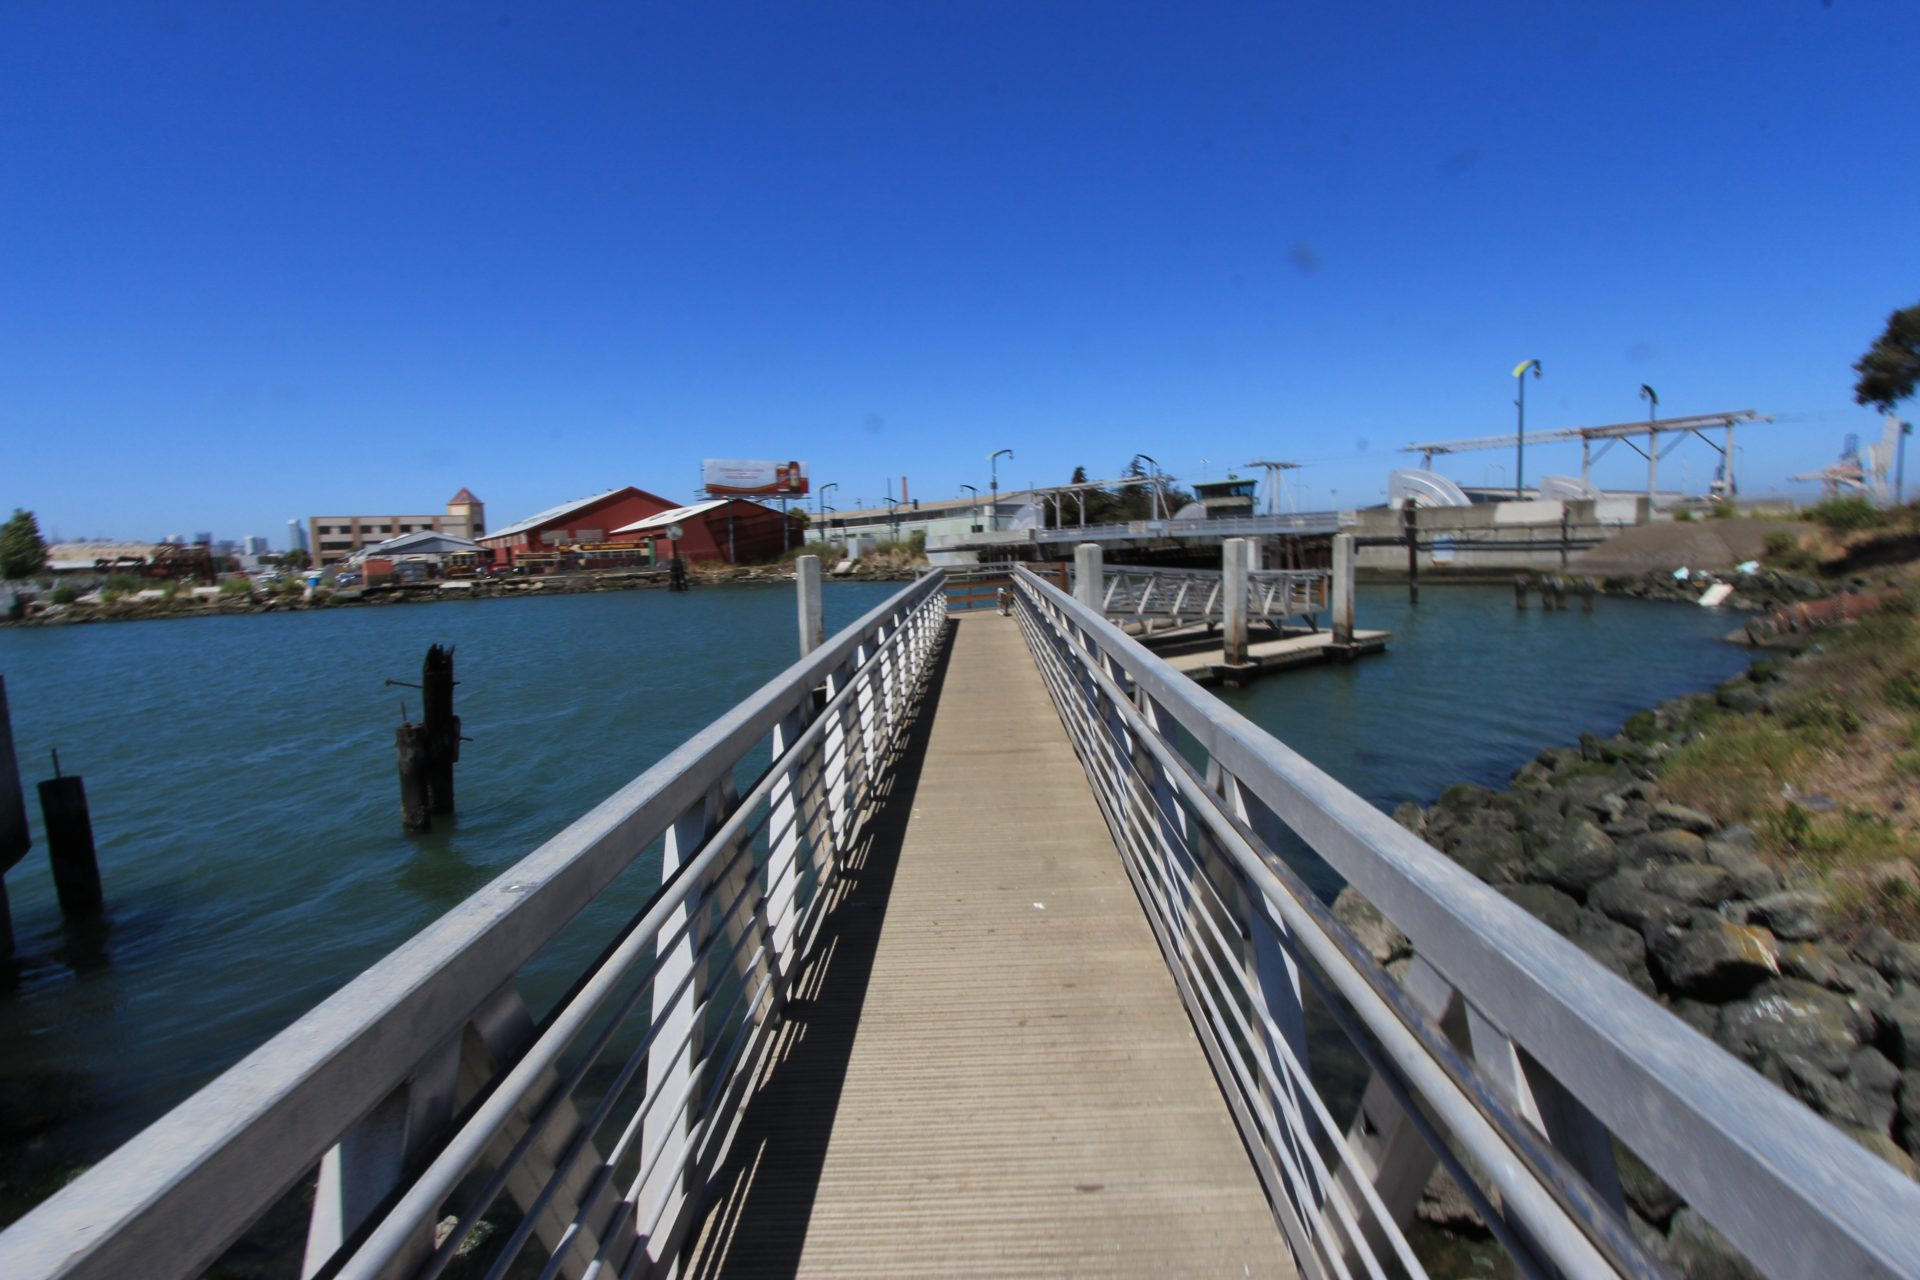 Long walkway with railings, from shore to dock